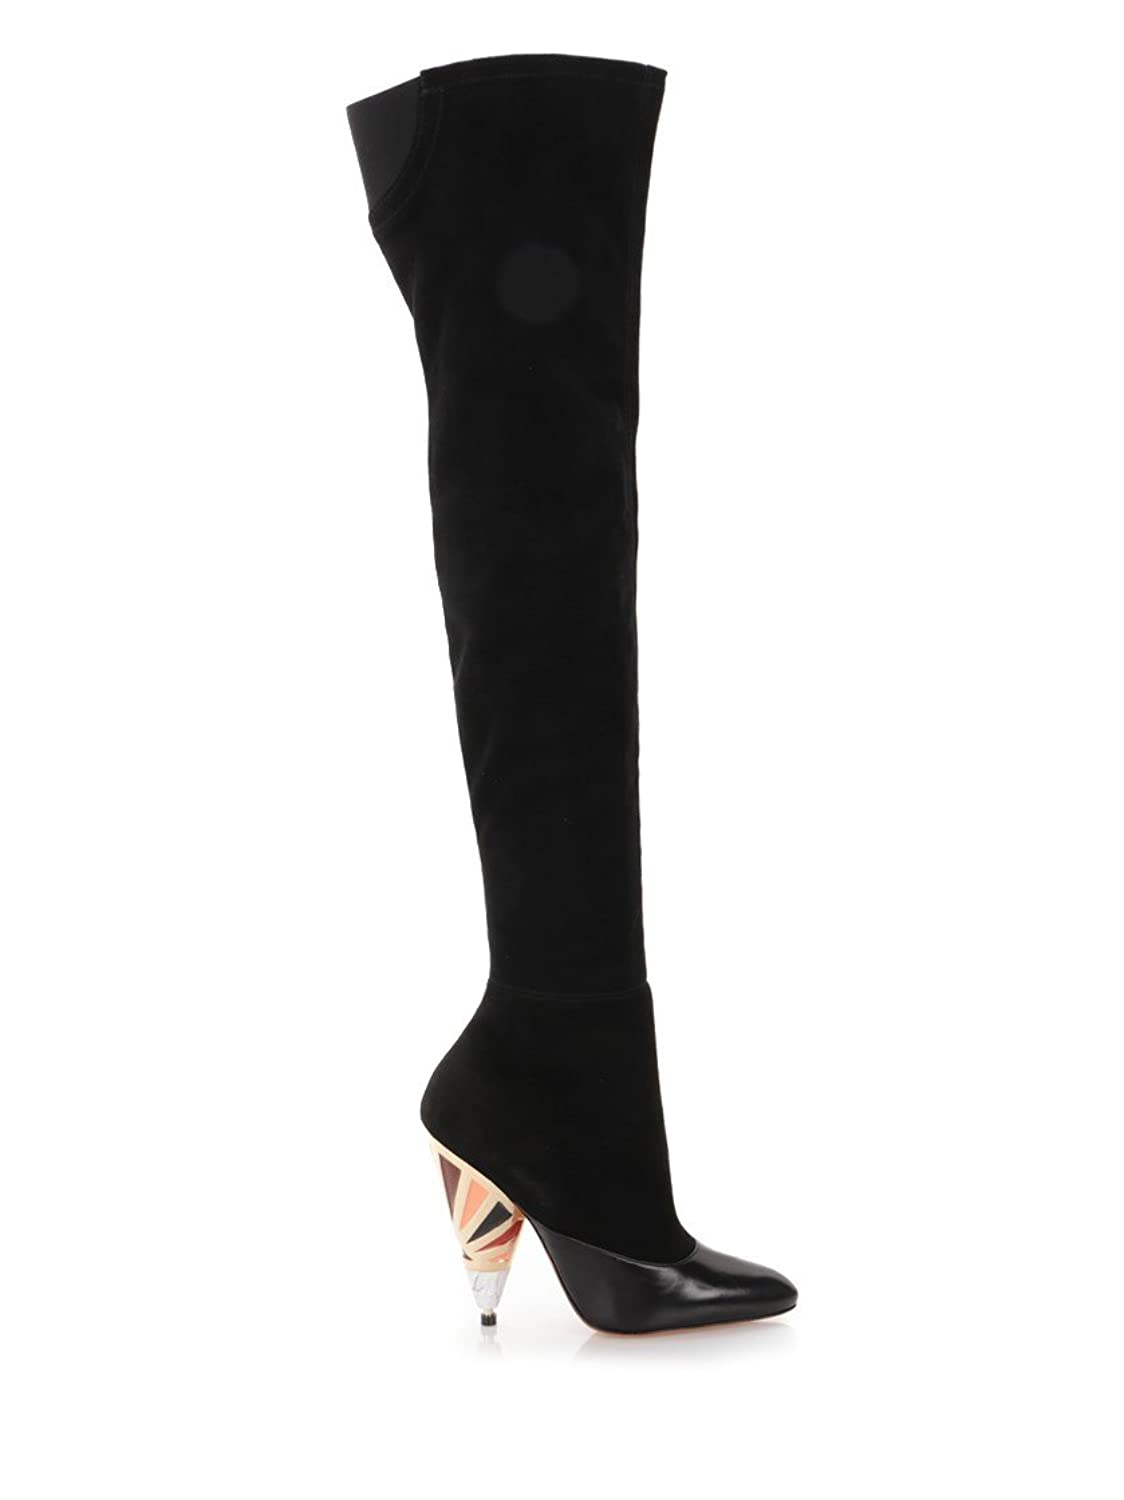 GIVENCHY WOMEN'S BE09105178001 BLACK SUEDE BOOTS